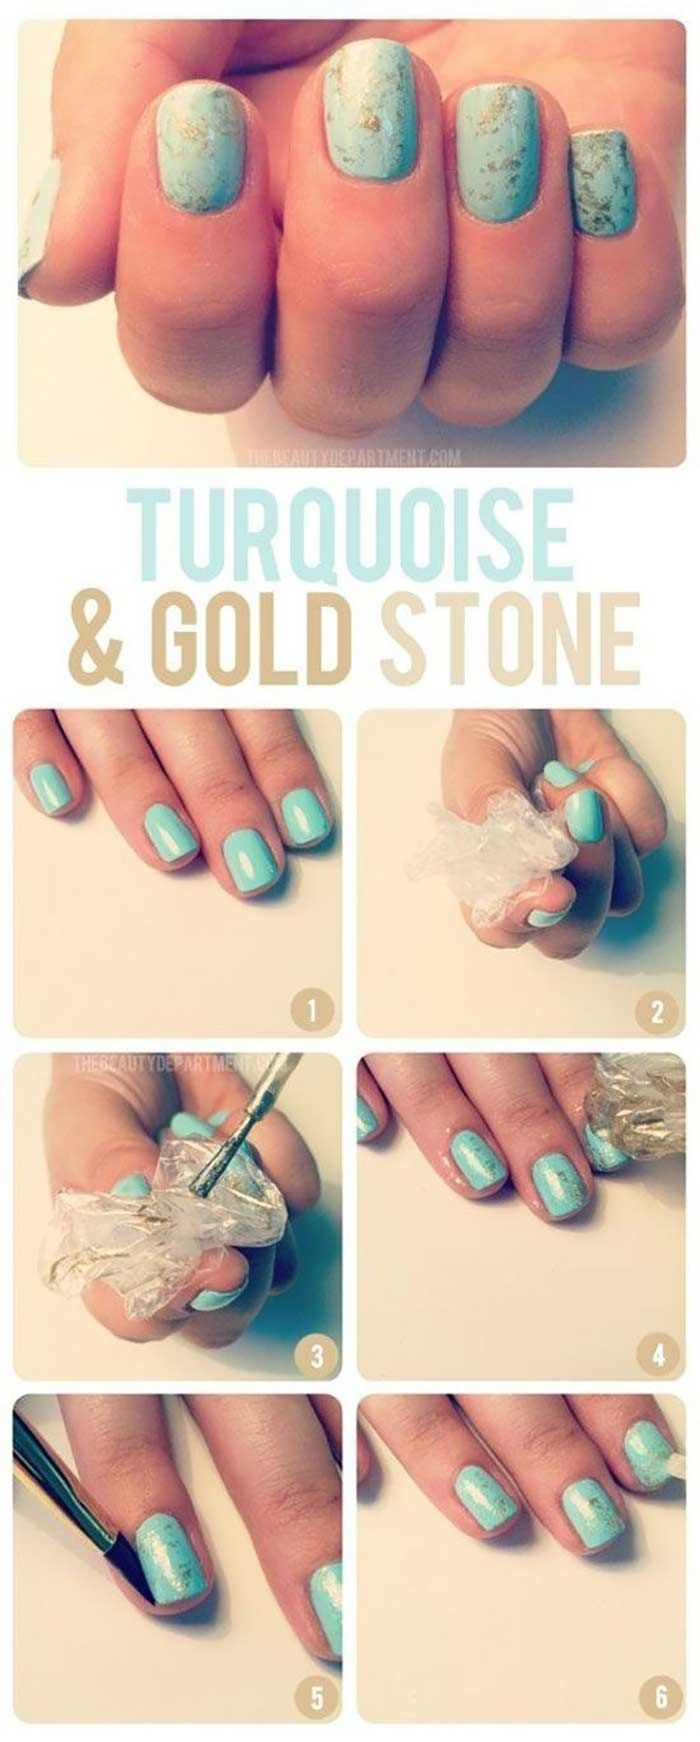 Top 60 Easy Nail Designs For Short Nails - 2018 Update   Trendy nail ...